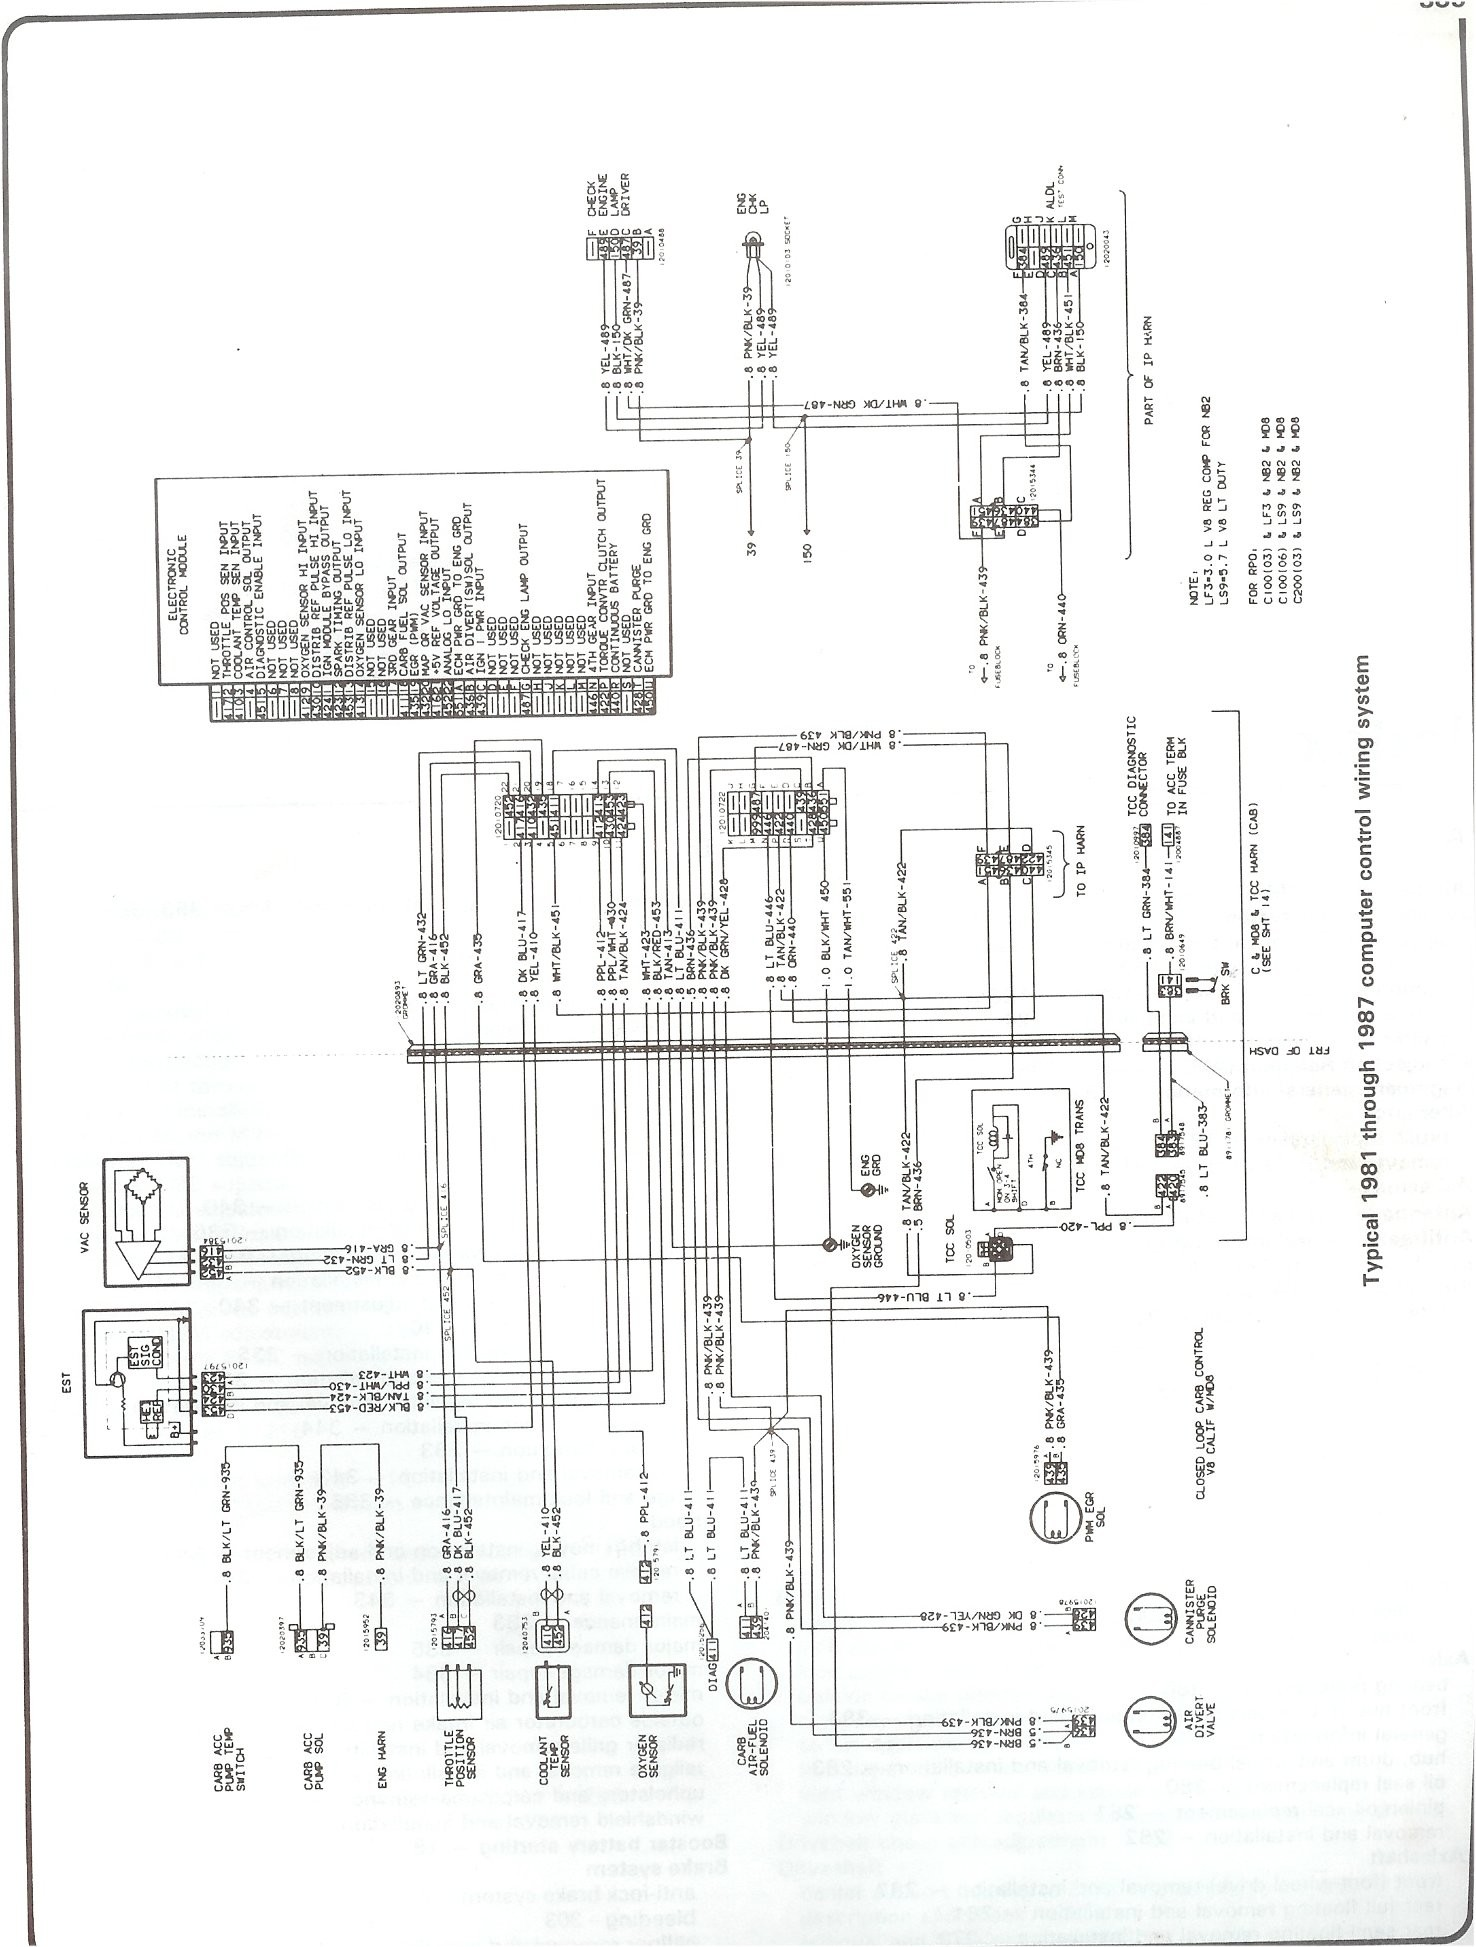 1982 kz650h wiring diagram